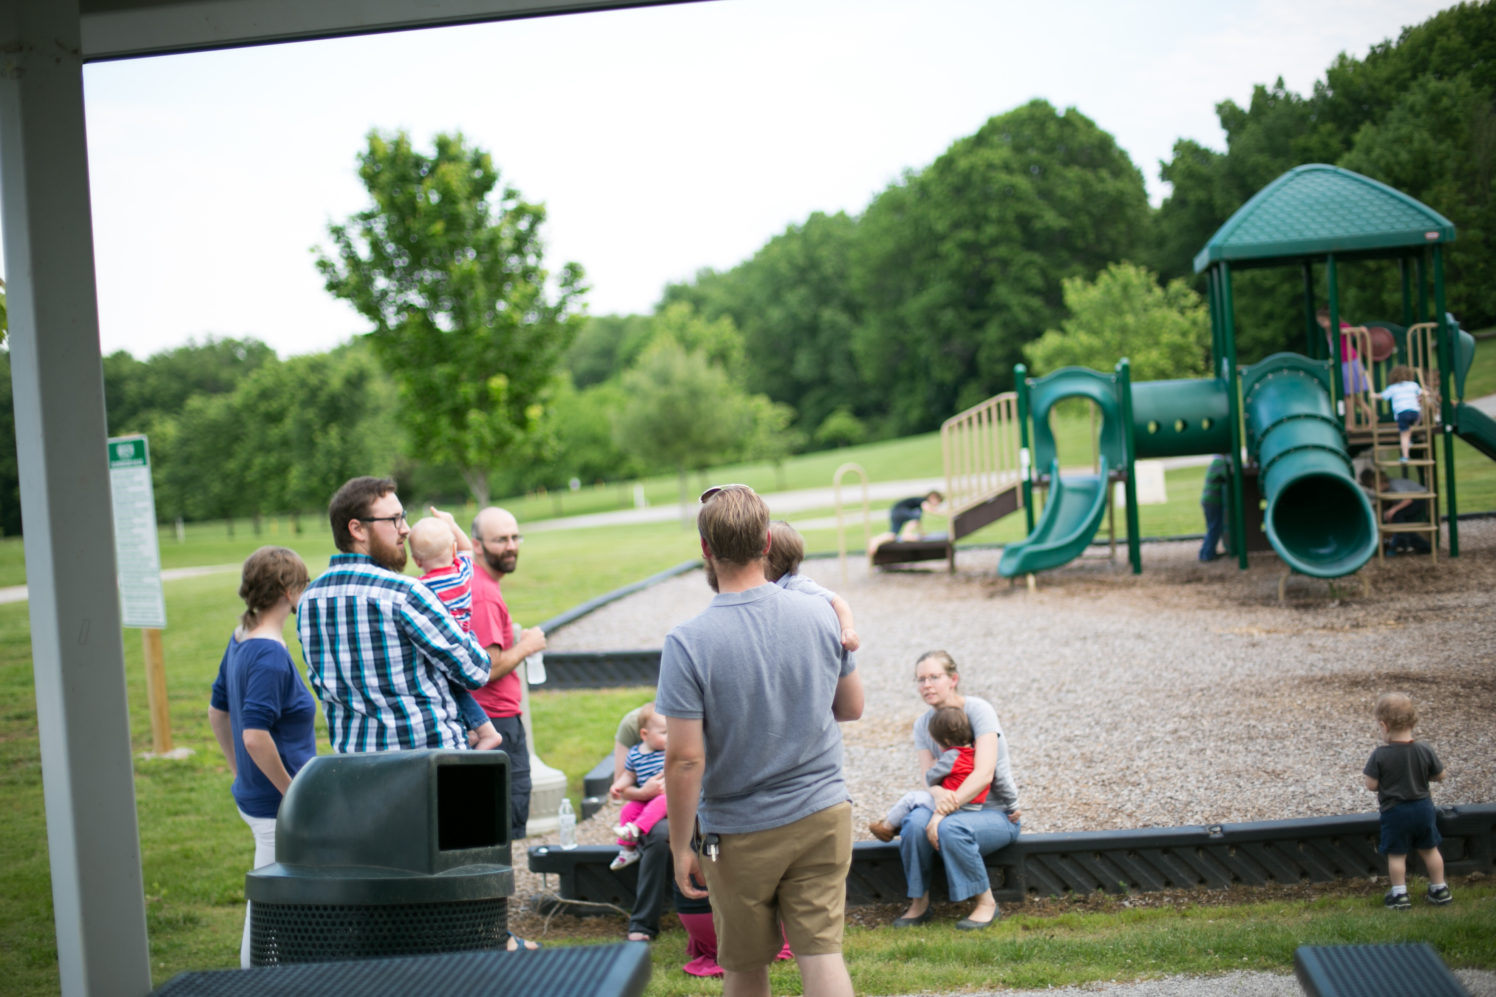 families at the park